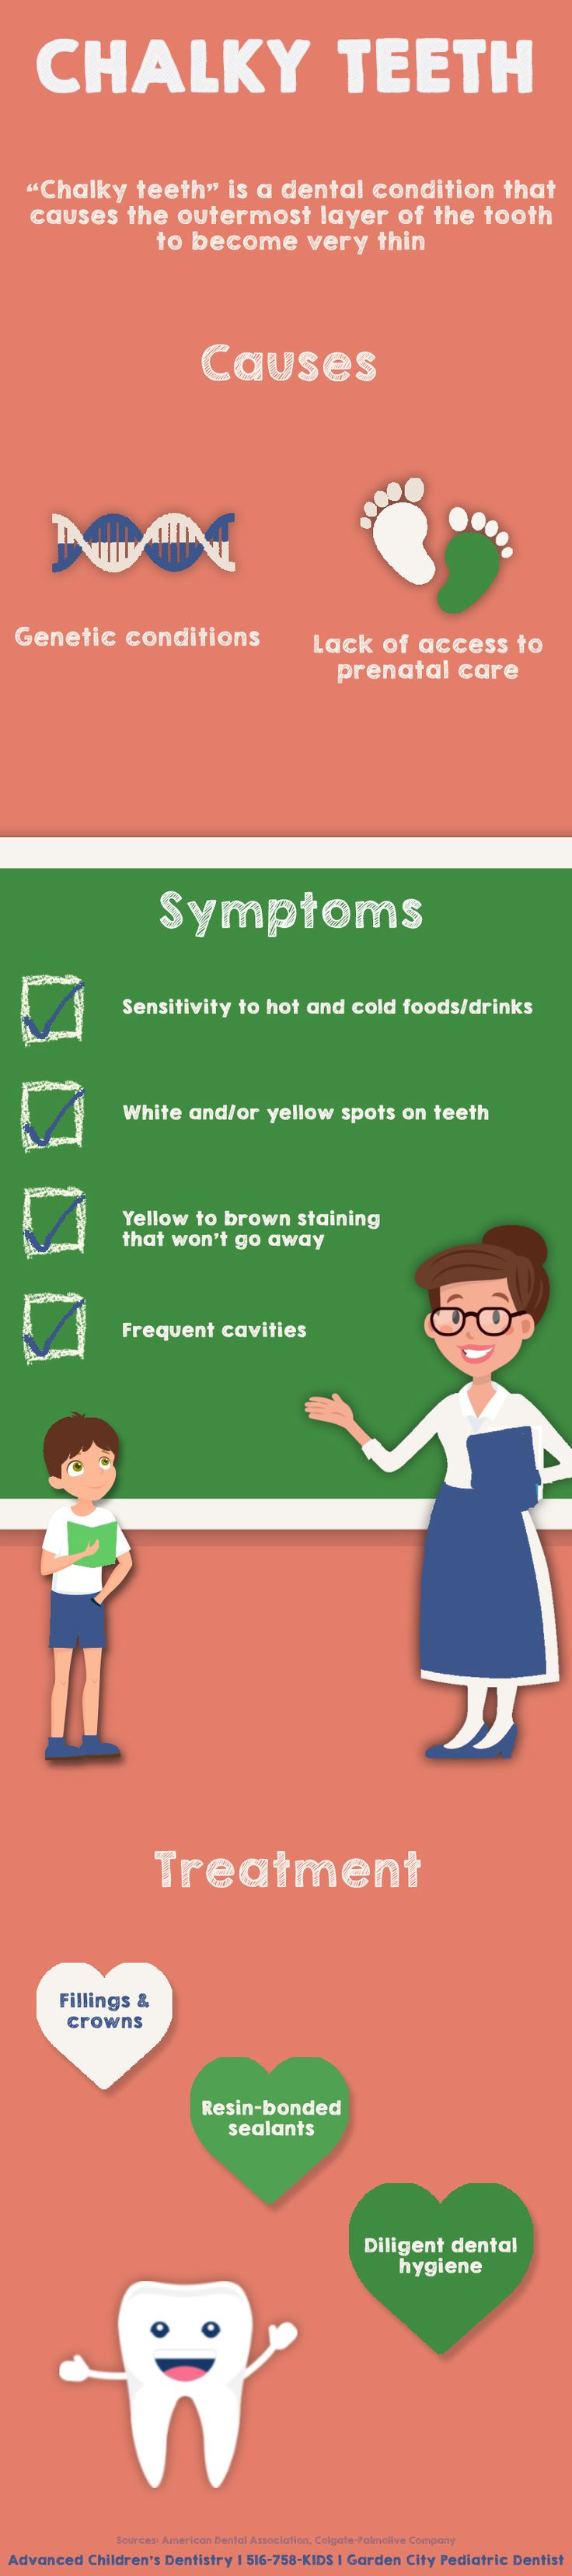 What Are Chalky Teeth? in 2020 Health tips, Map, Map